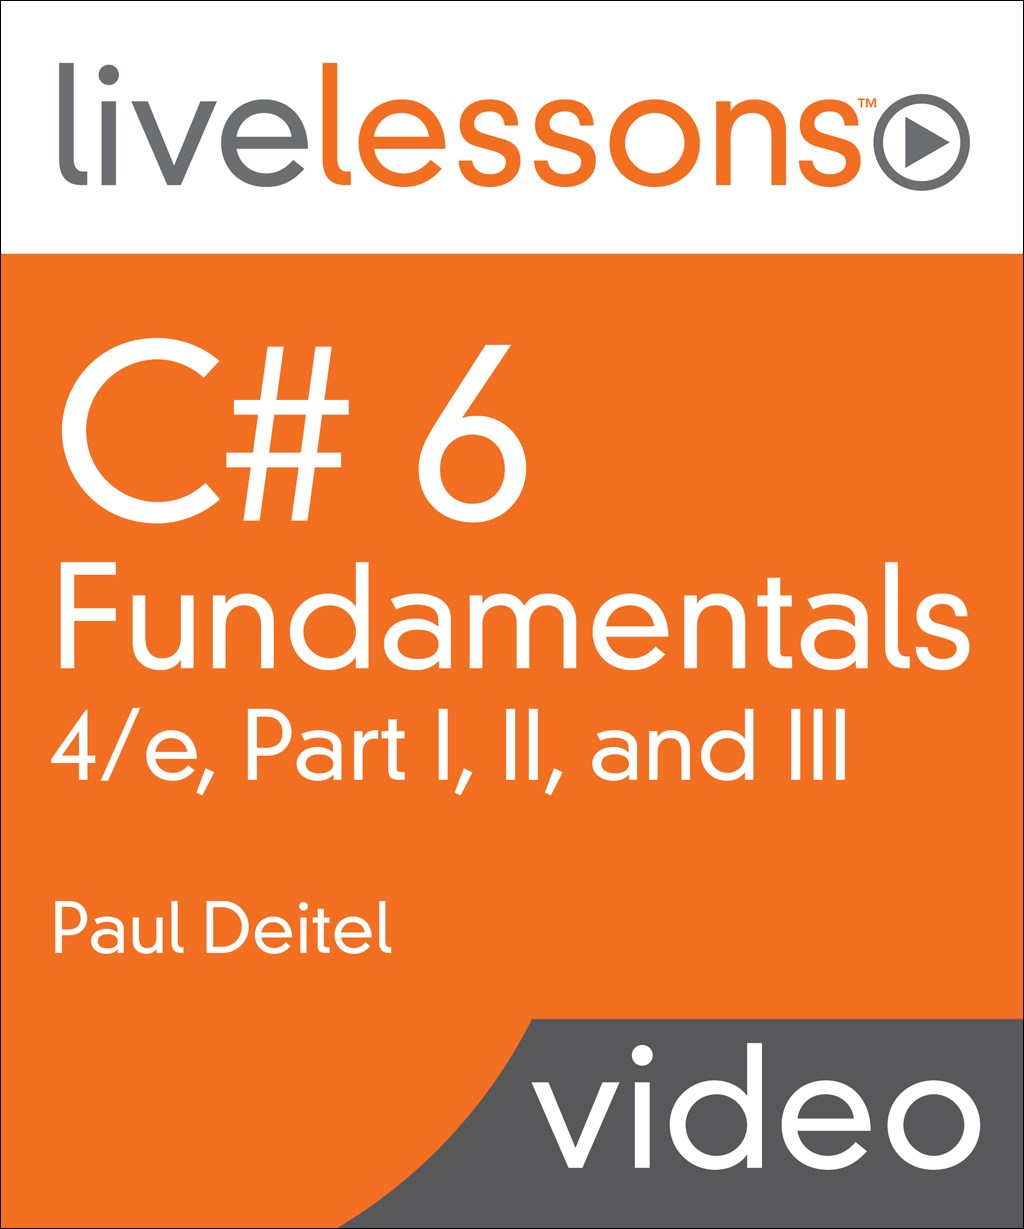 C# 6 Fundamentals LiveLessons Parts I, II, and III, 4th Edition